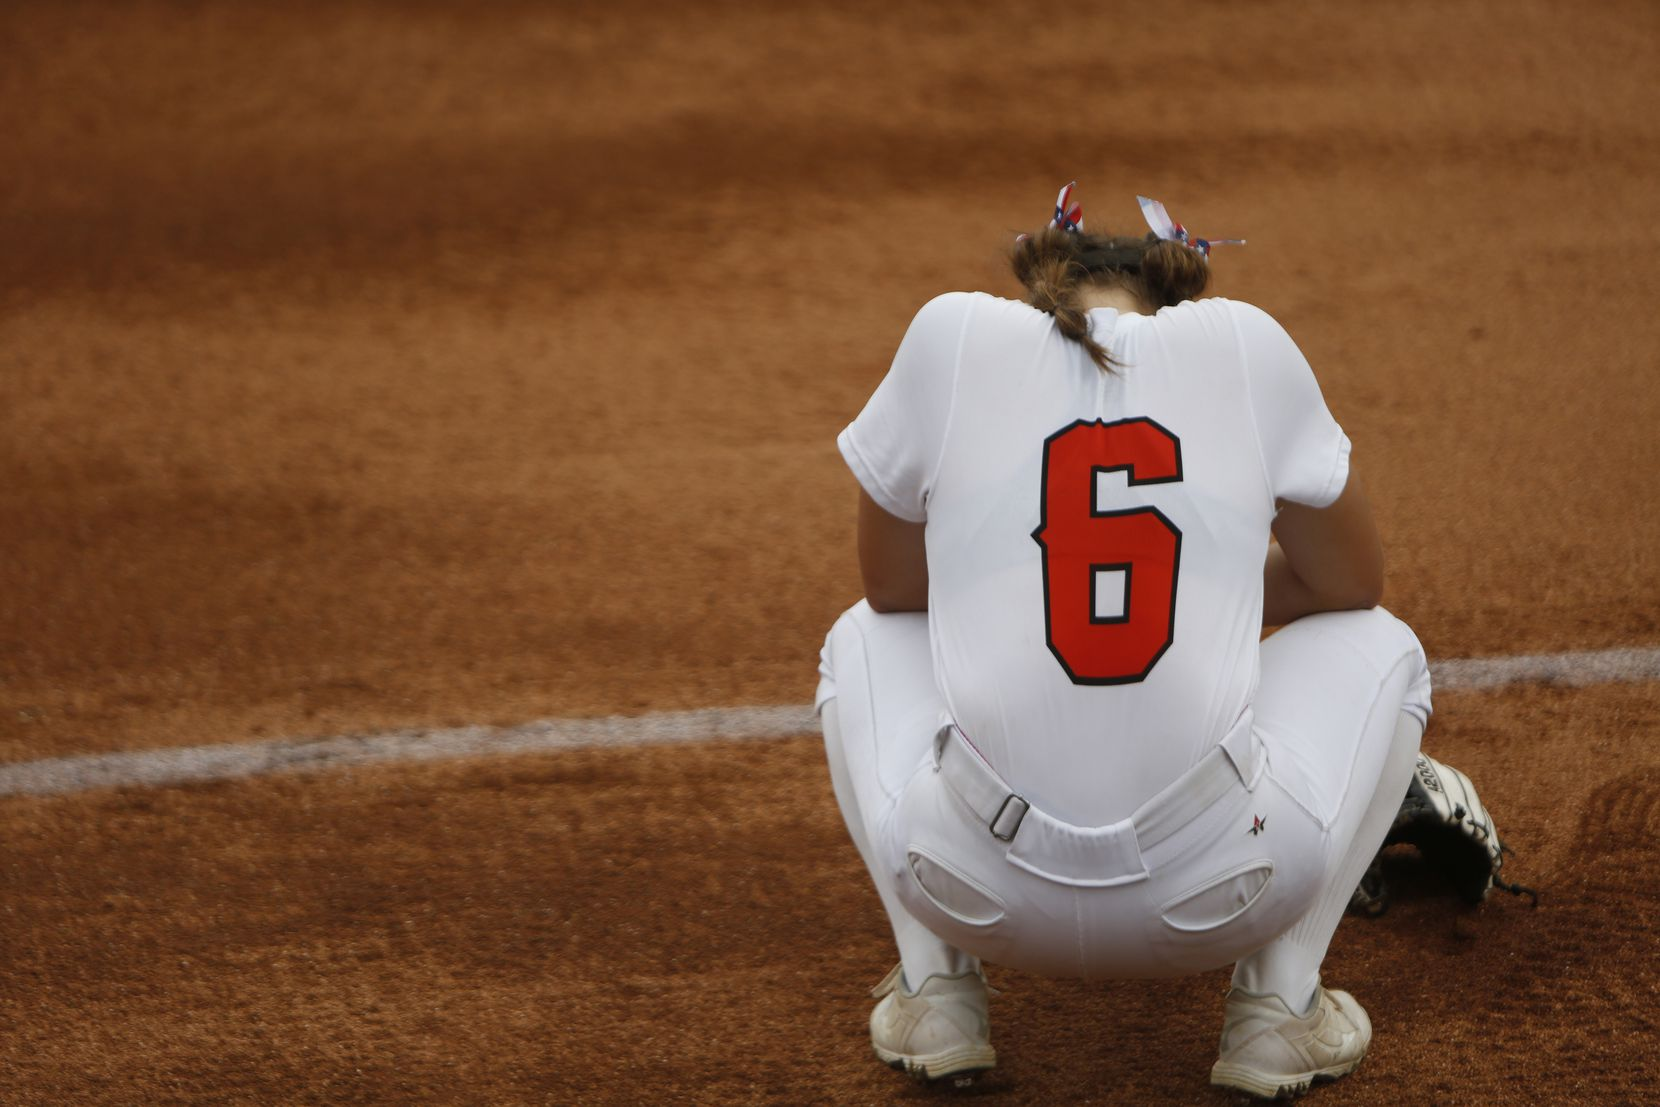 Aledo's Caitlin Beaty (6) pauses near 1st base before the start of their state championship game against Barbers Hill. The two teams played their UIL 5A state softball championship game at Red and Charline McCombs Field on the University of Texas campus in Austin on June 5, 2021. (Steve Hamm/ Special Contributor)